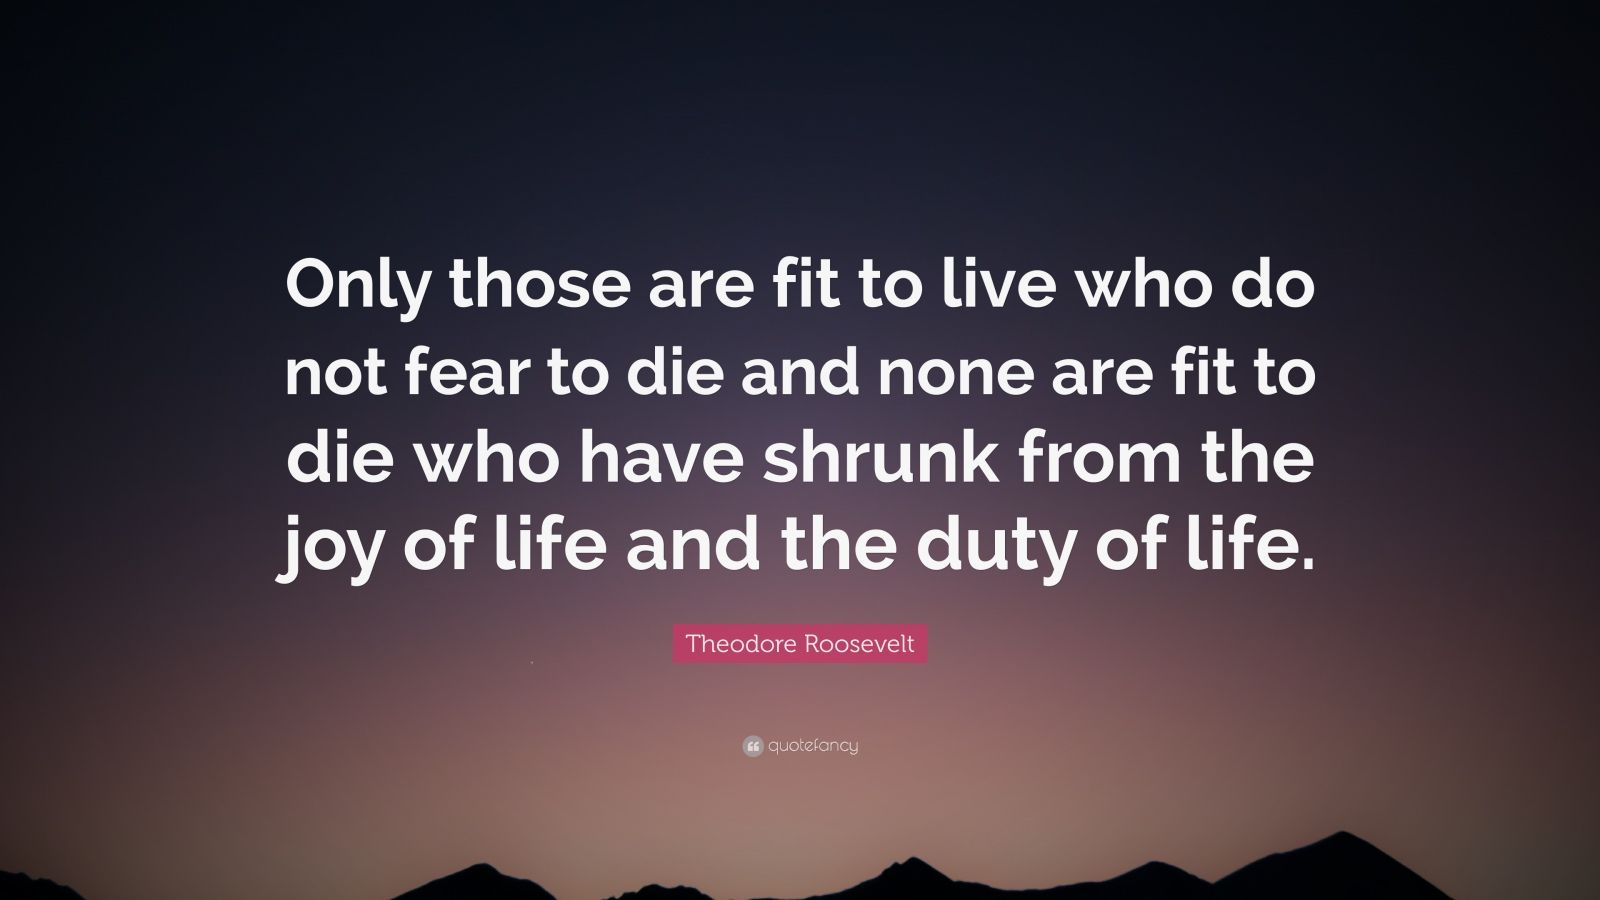 "Theodore Roosevelt Quote: ""Only those are fit to live who do not fear to die and none are fit to die who have shrunk from the joy of life and the duty of life."""